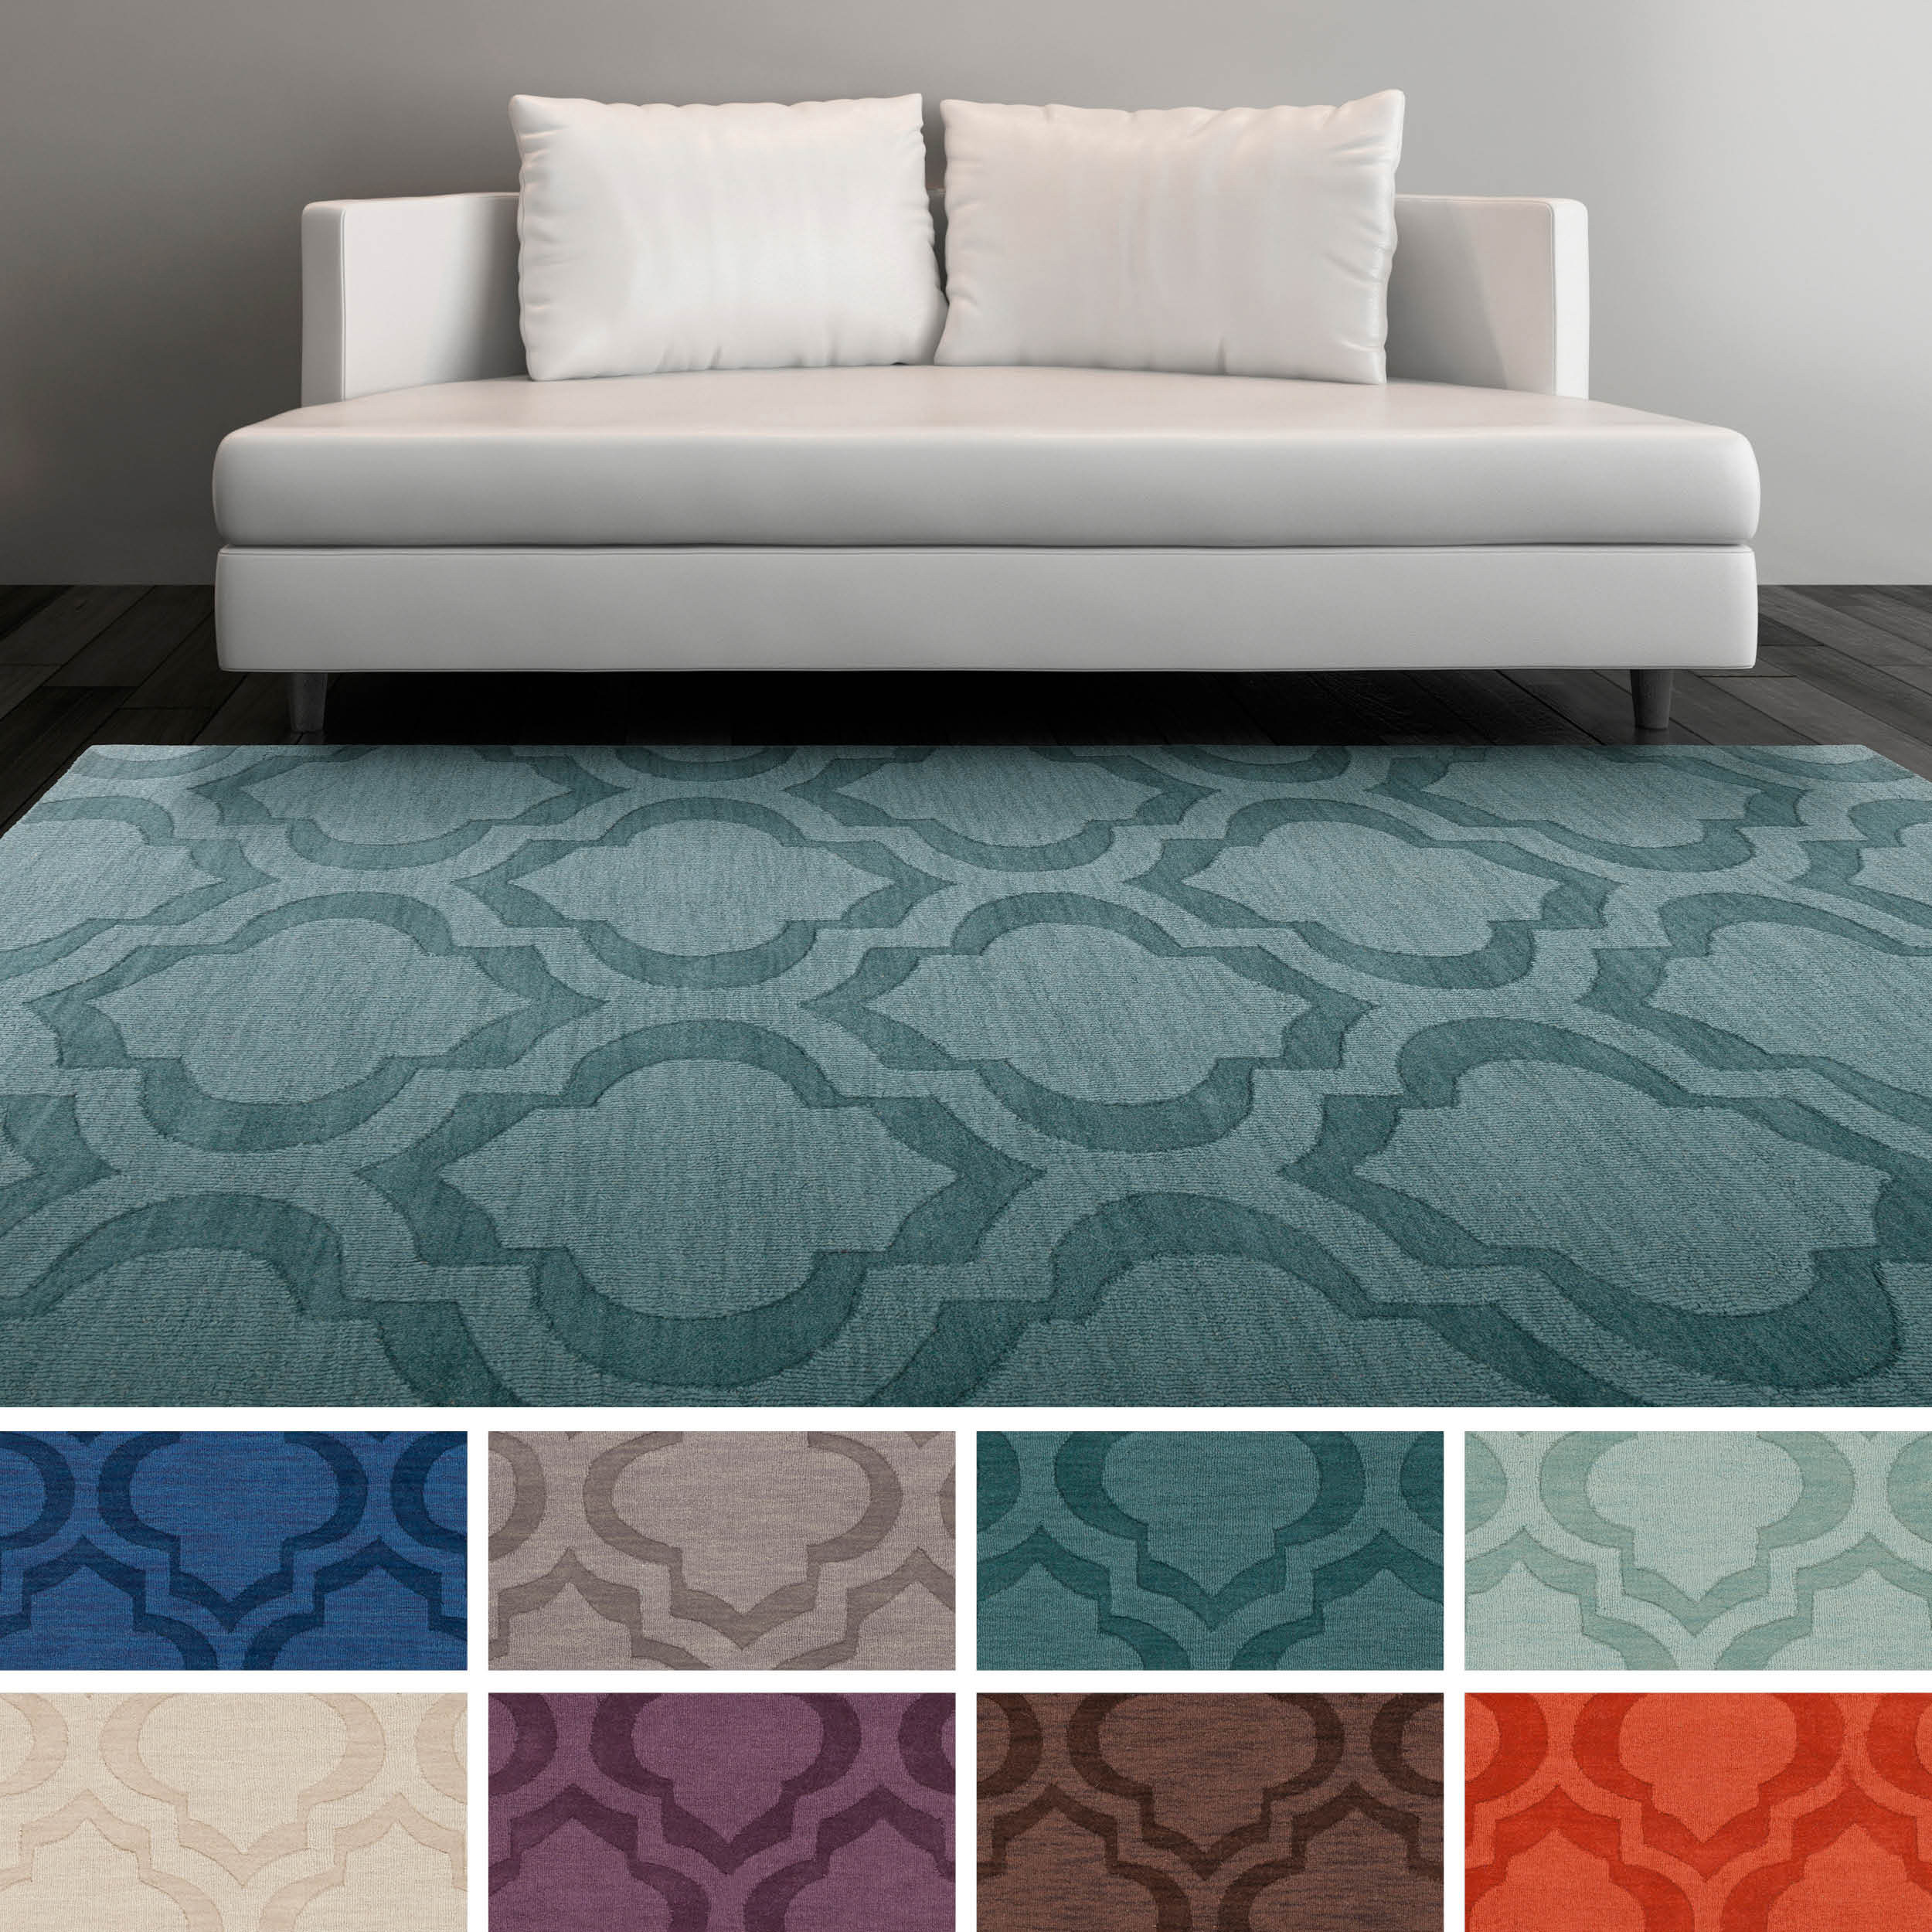 Brilliant wool area rugs for floor decor ideas with modern wool area rugs